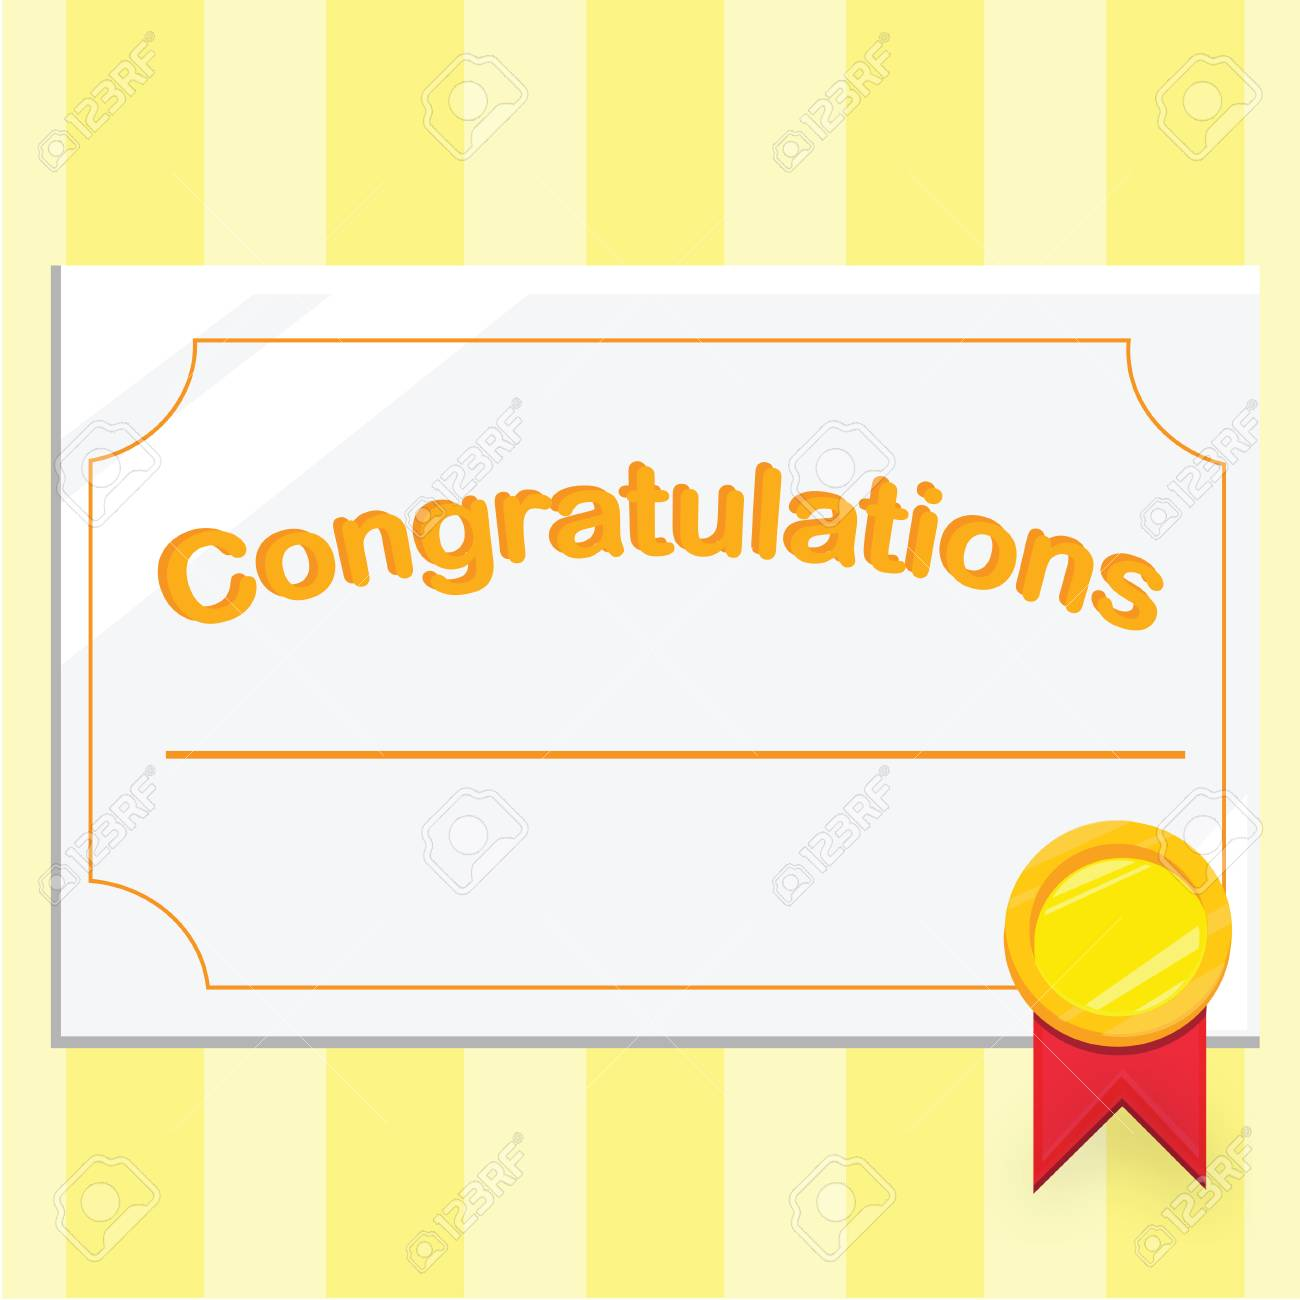 Congratulations Certificate | Congratulations Certificate Stock Photo Picture And Royalty Free